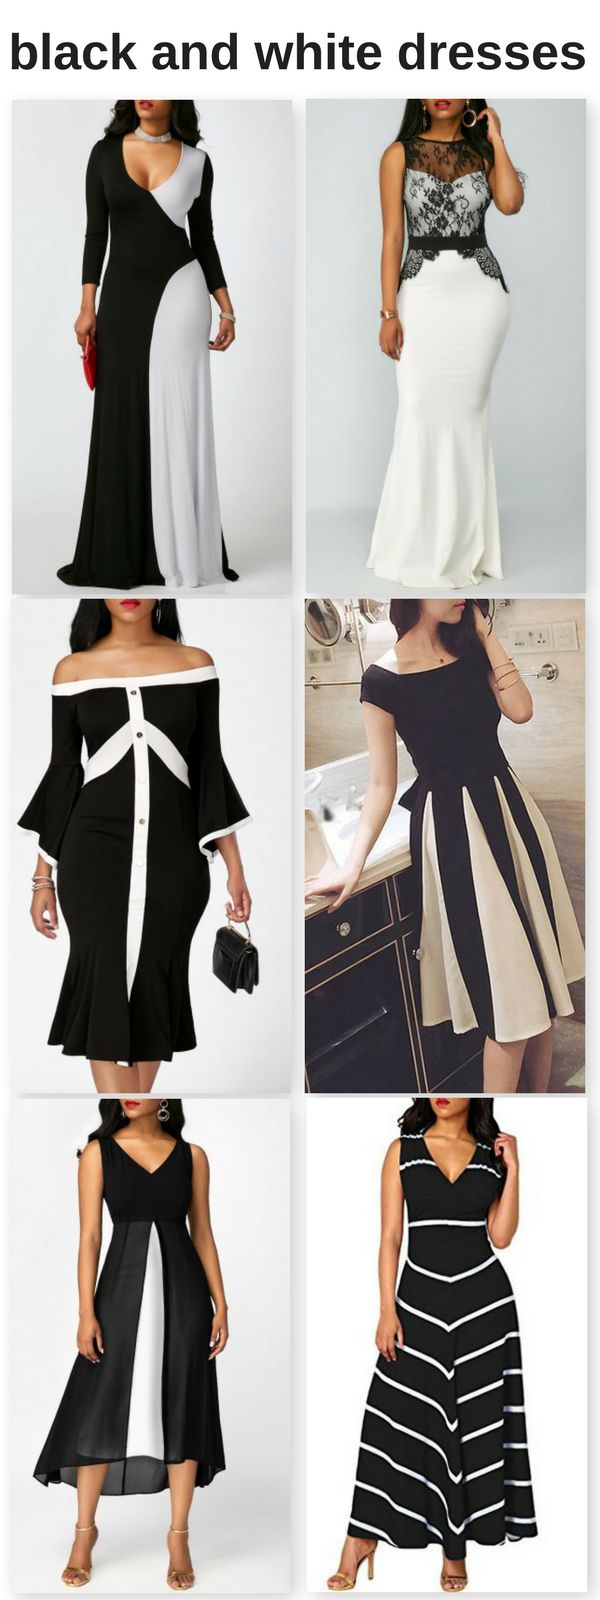 Black and white dresses and gowns okay